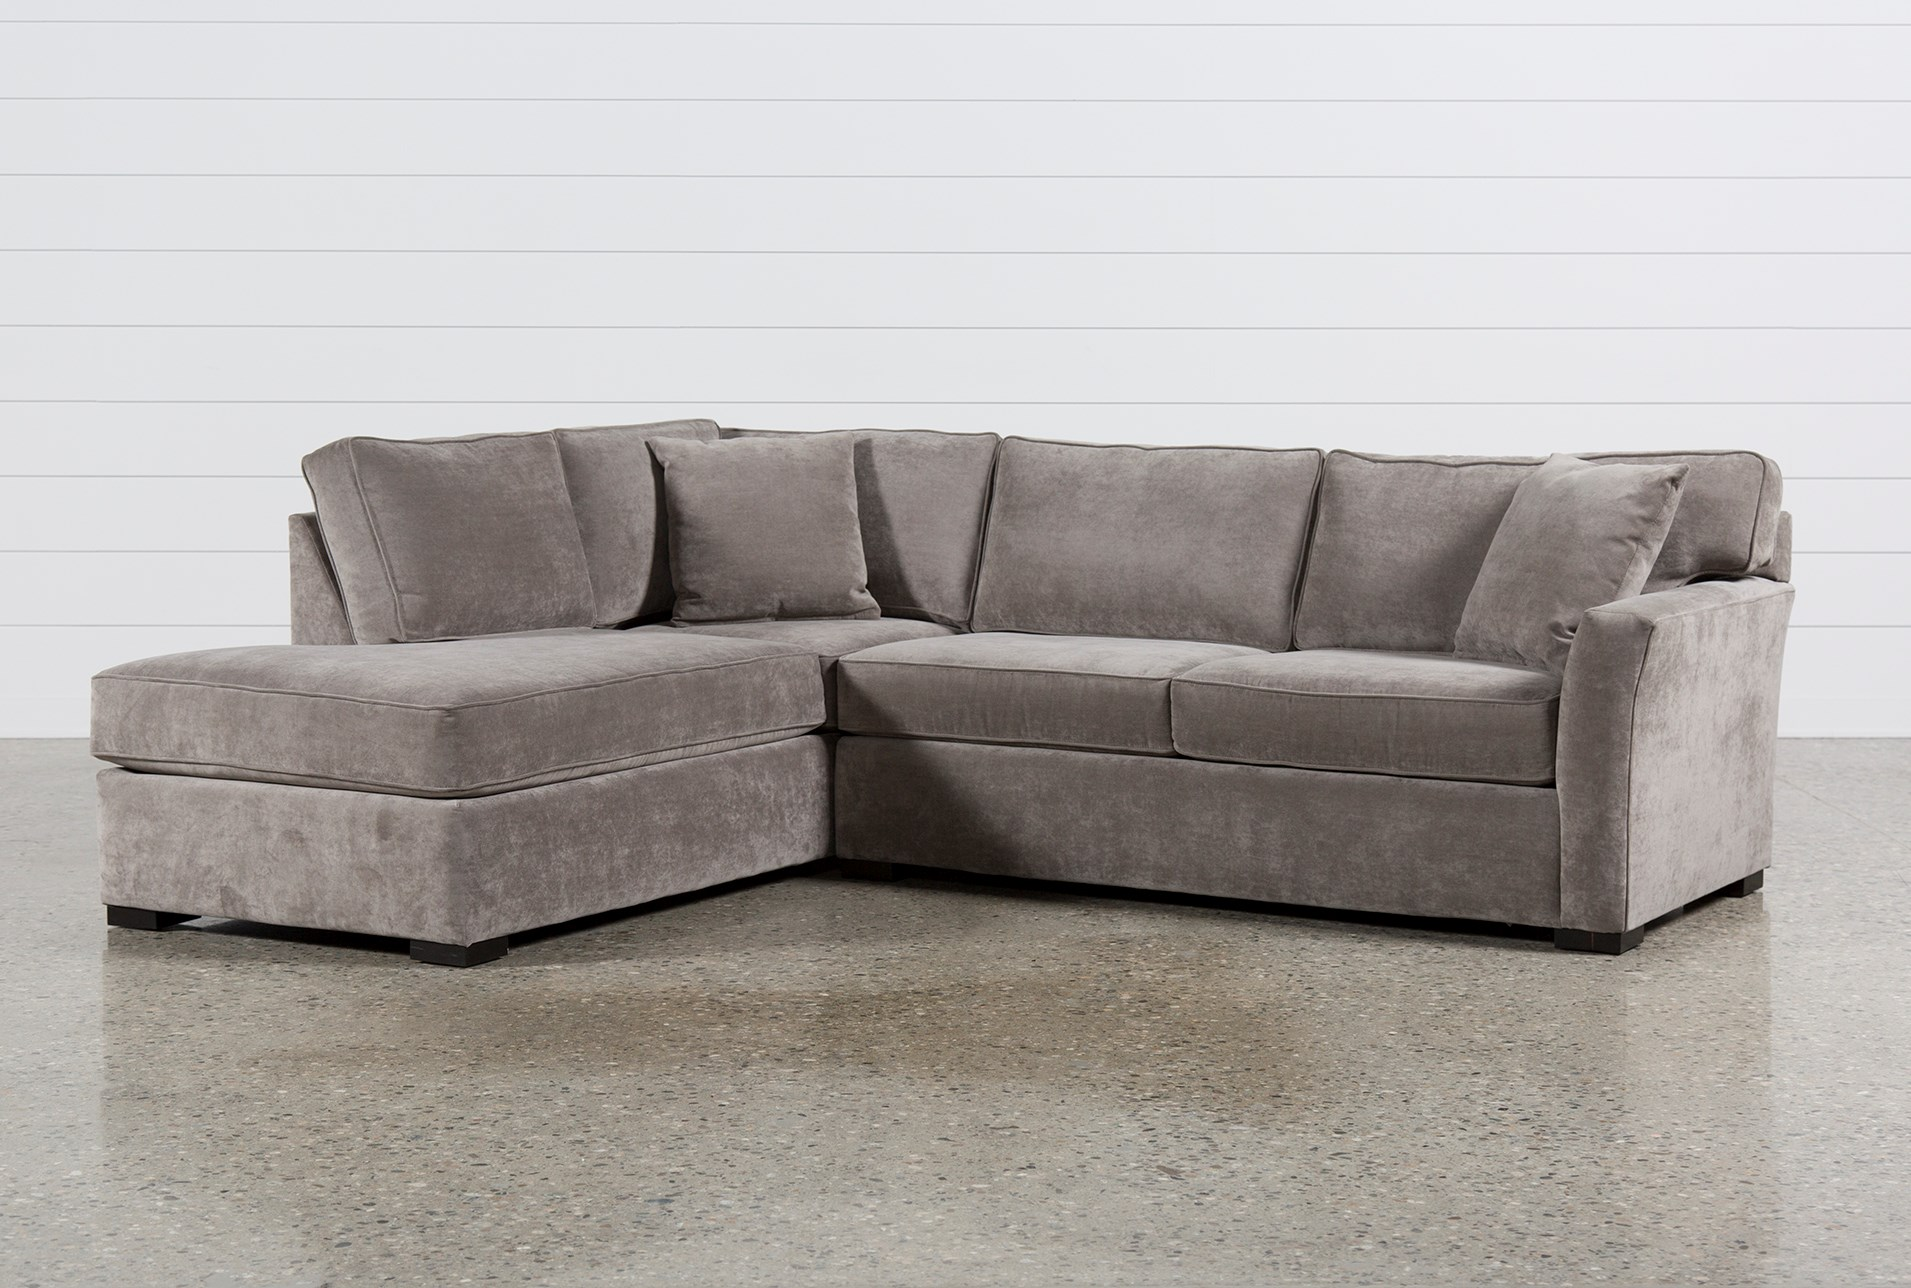 Aspen 2 Piece Sleeper Sectional W Laf Chaise Qty 1 Has Been Successfully Added To Your Cart